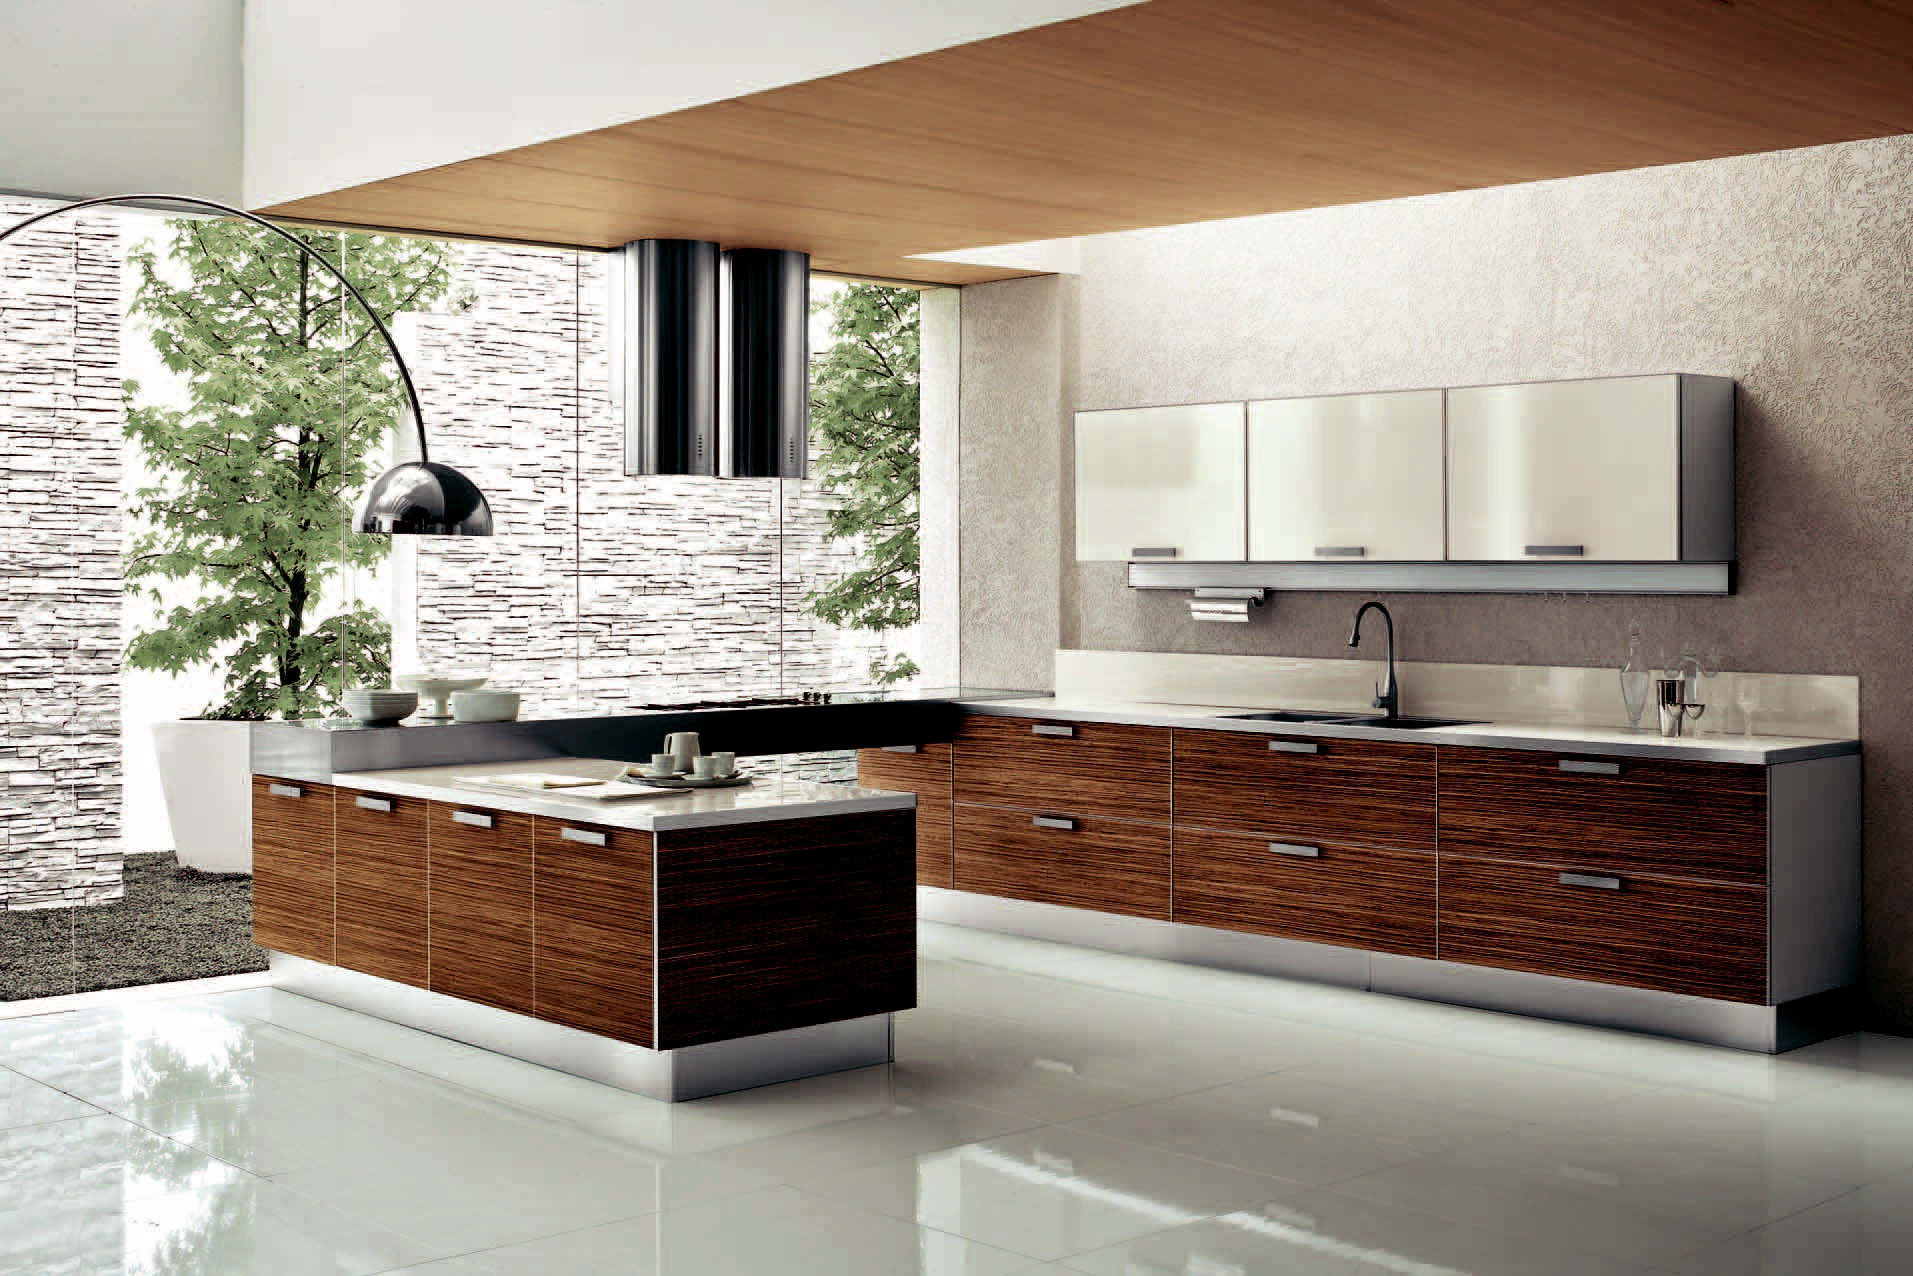 Beyond kitchens kitchen cupboards cape town kitchens for Pics of modern kitchen designs